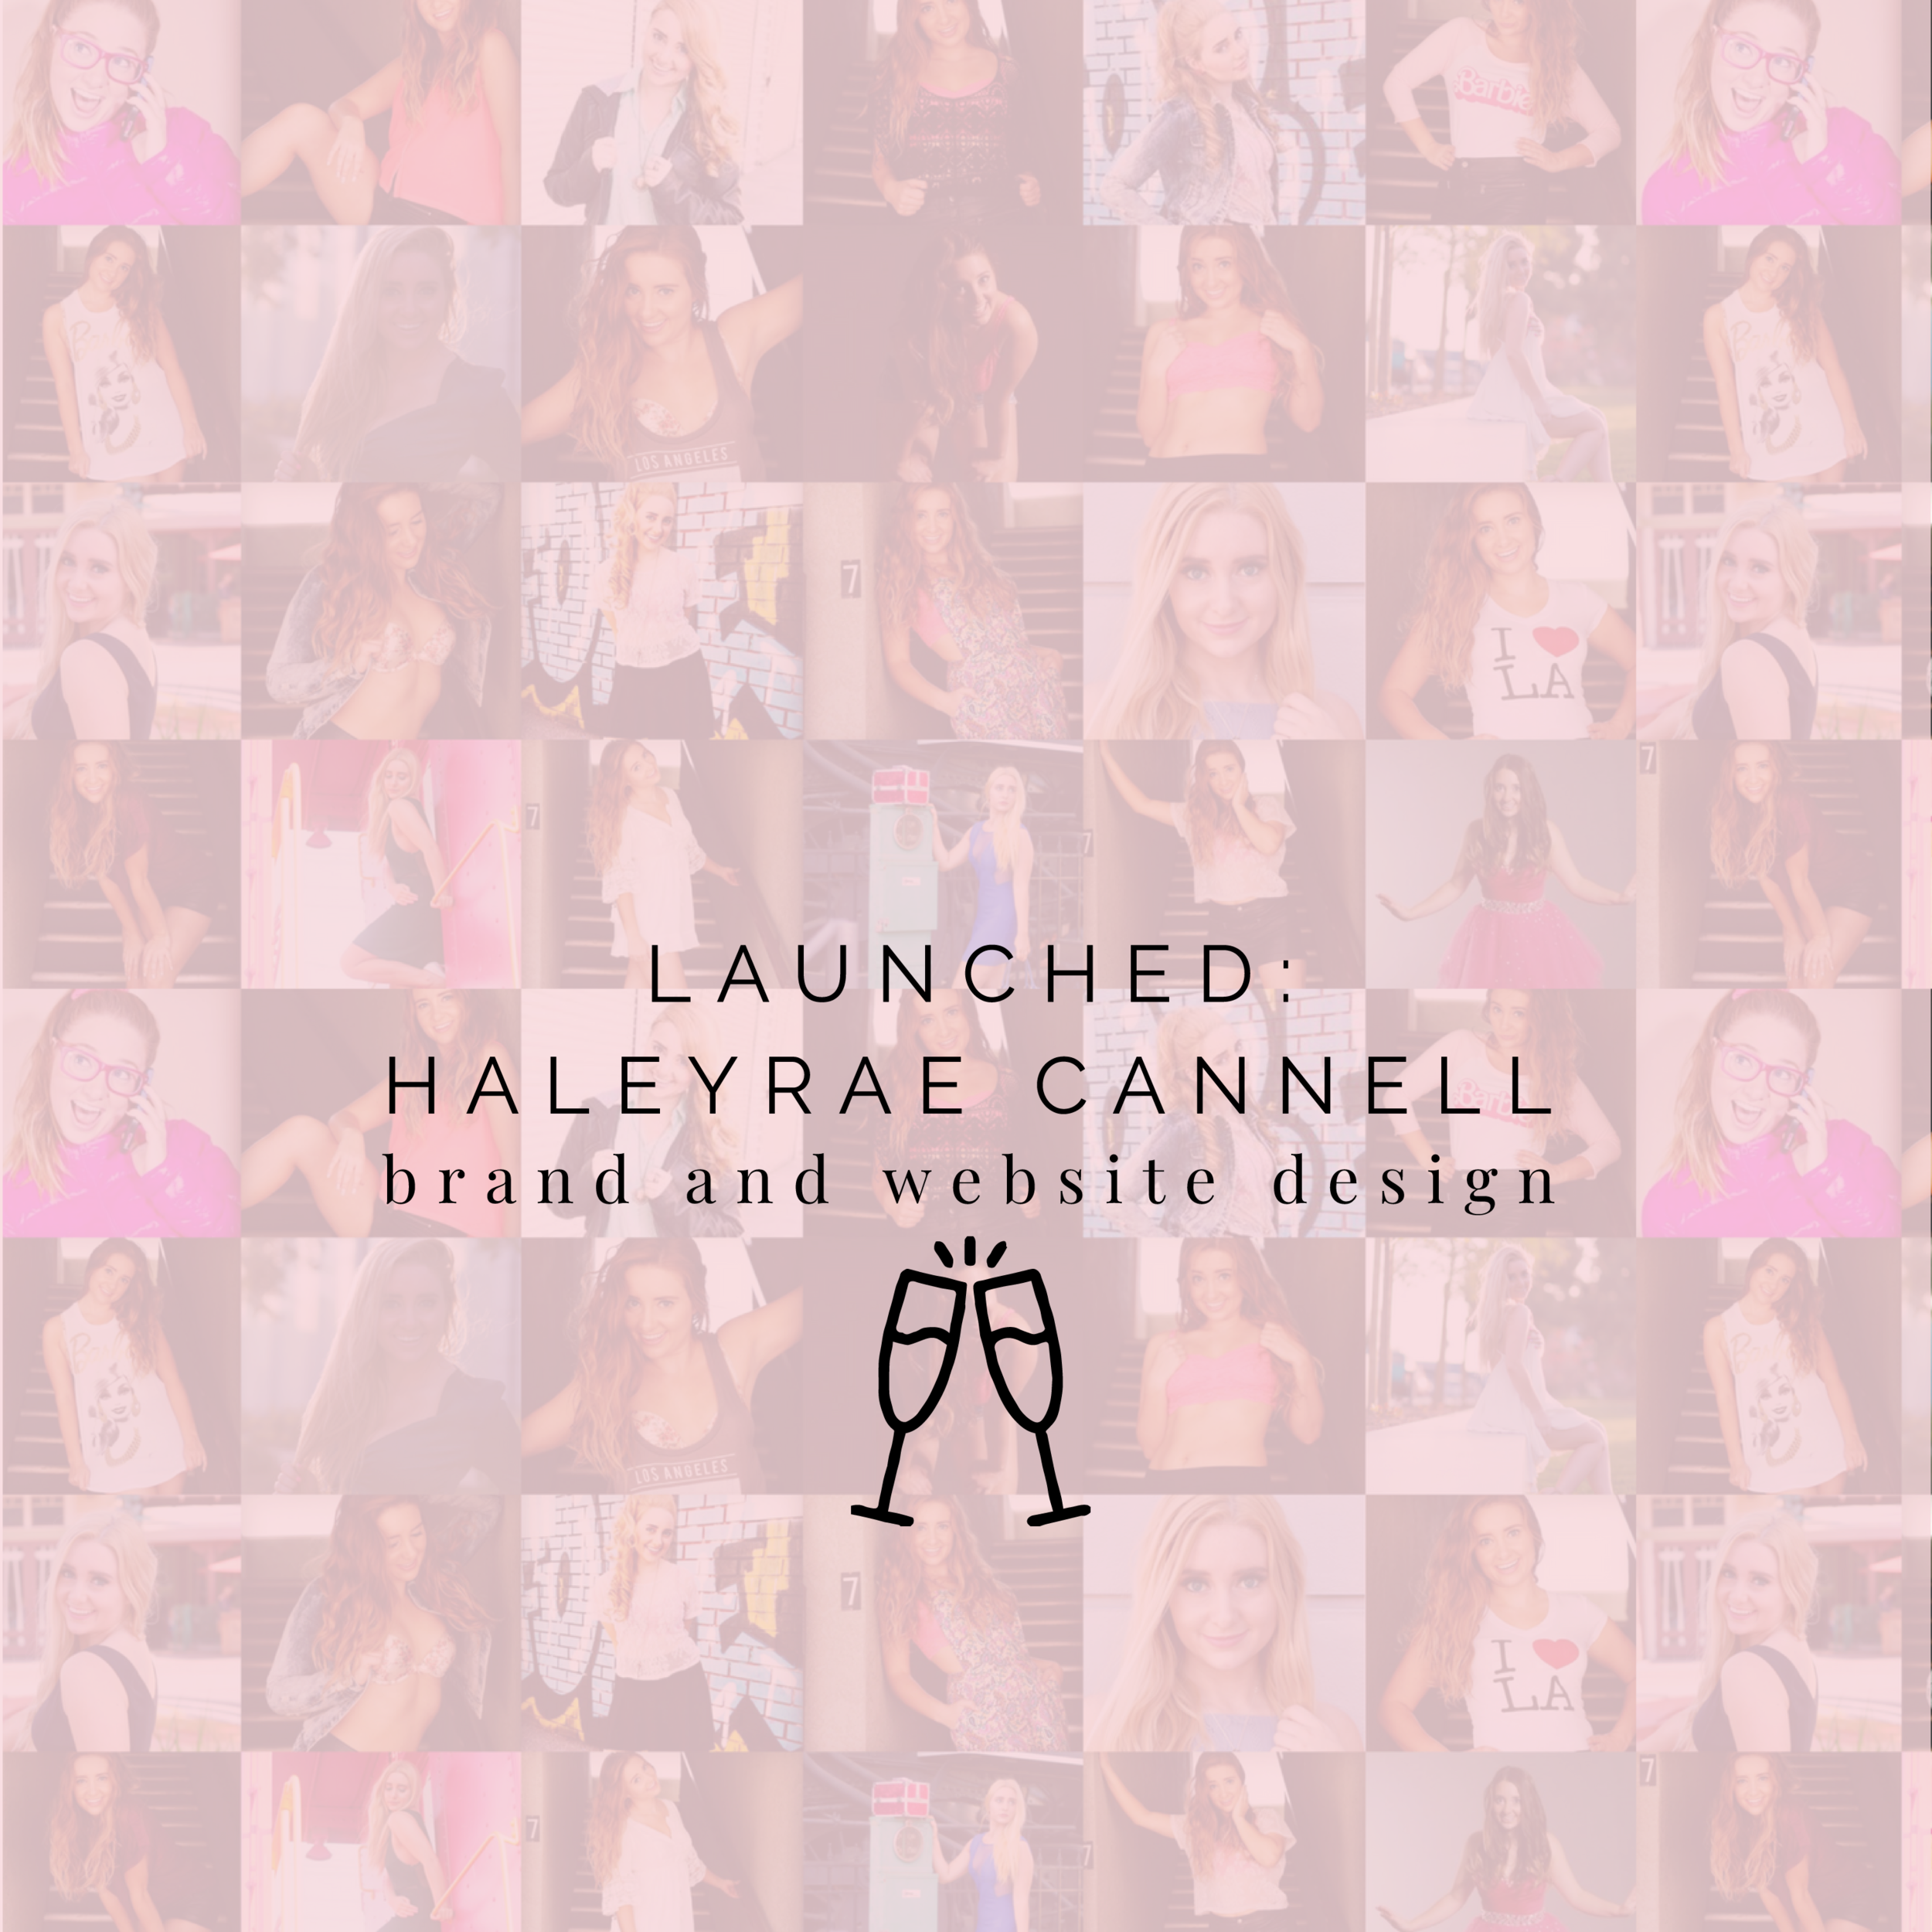 Launched: Haley Rae